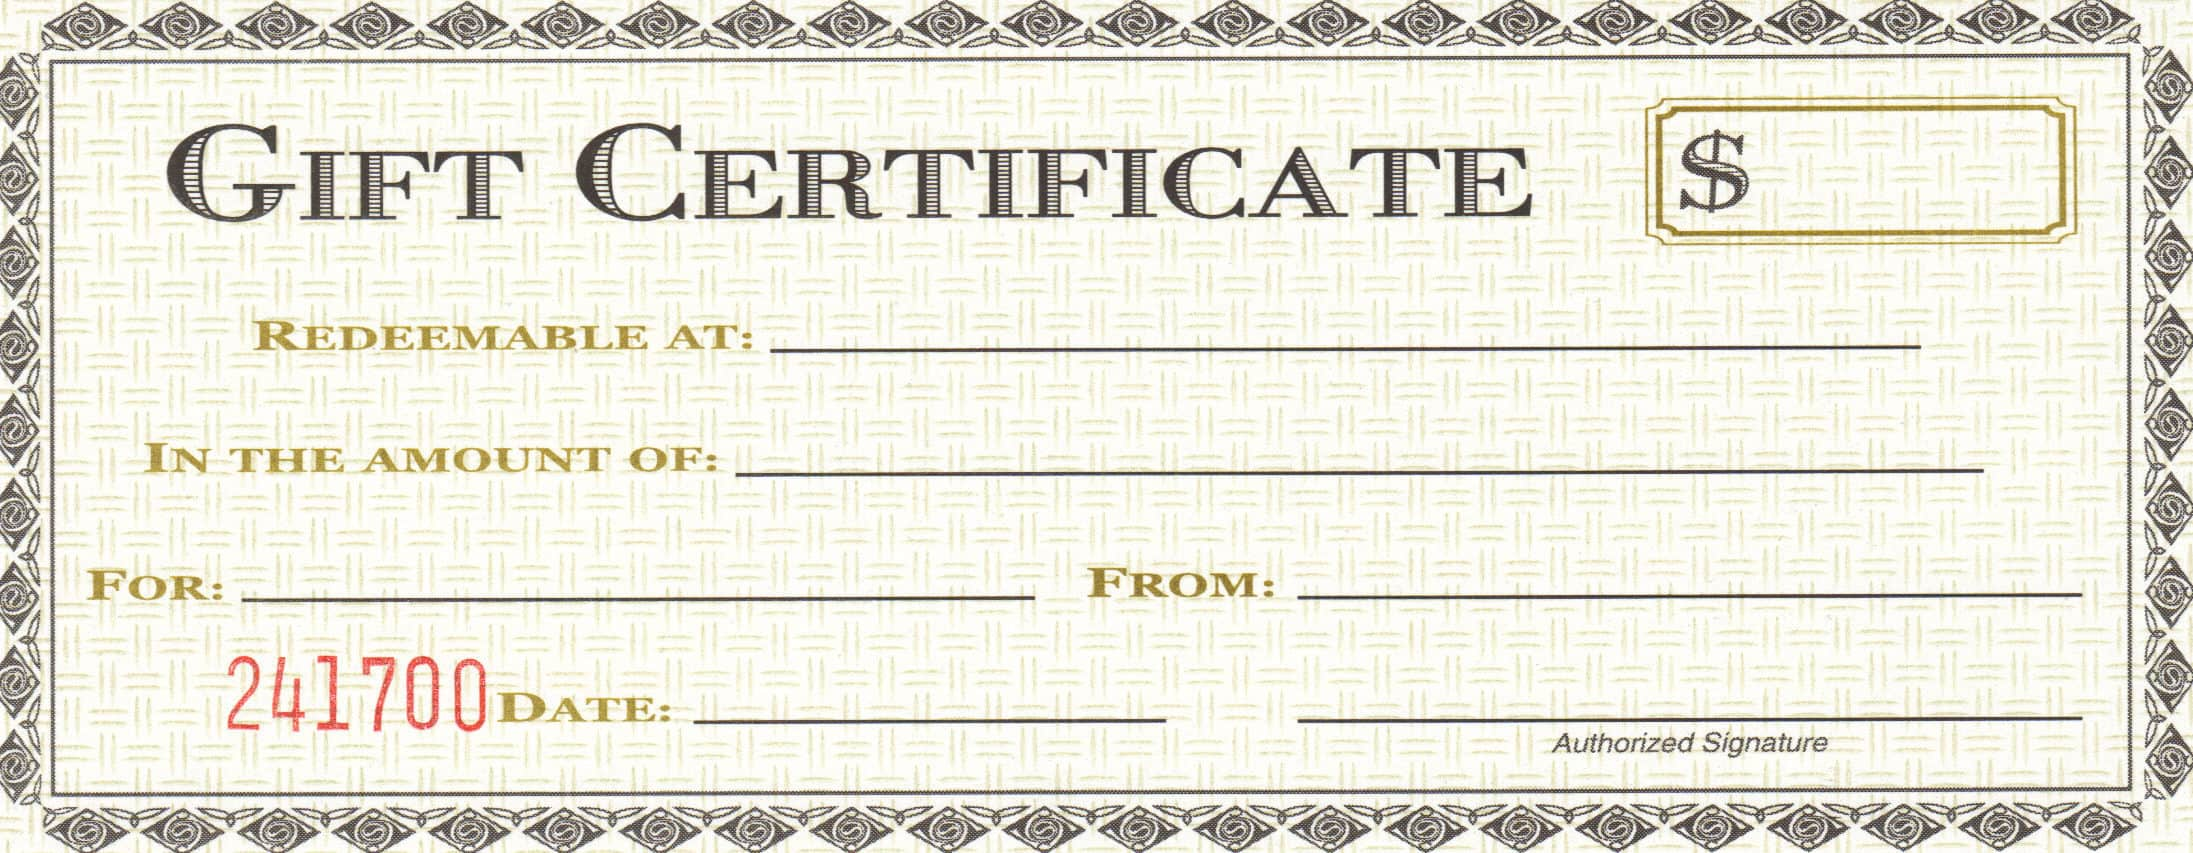 Free Gift Certificate sample 18.941